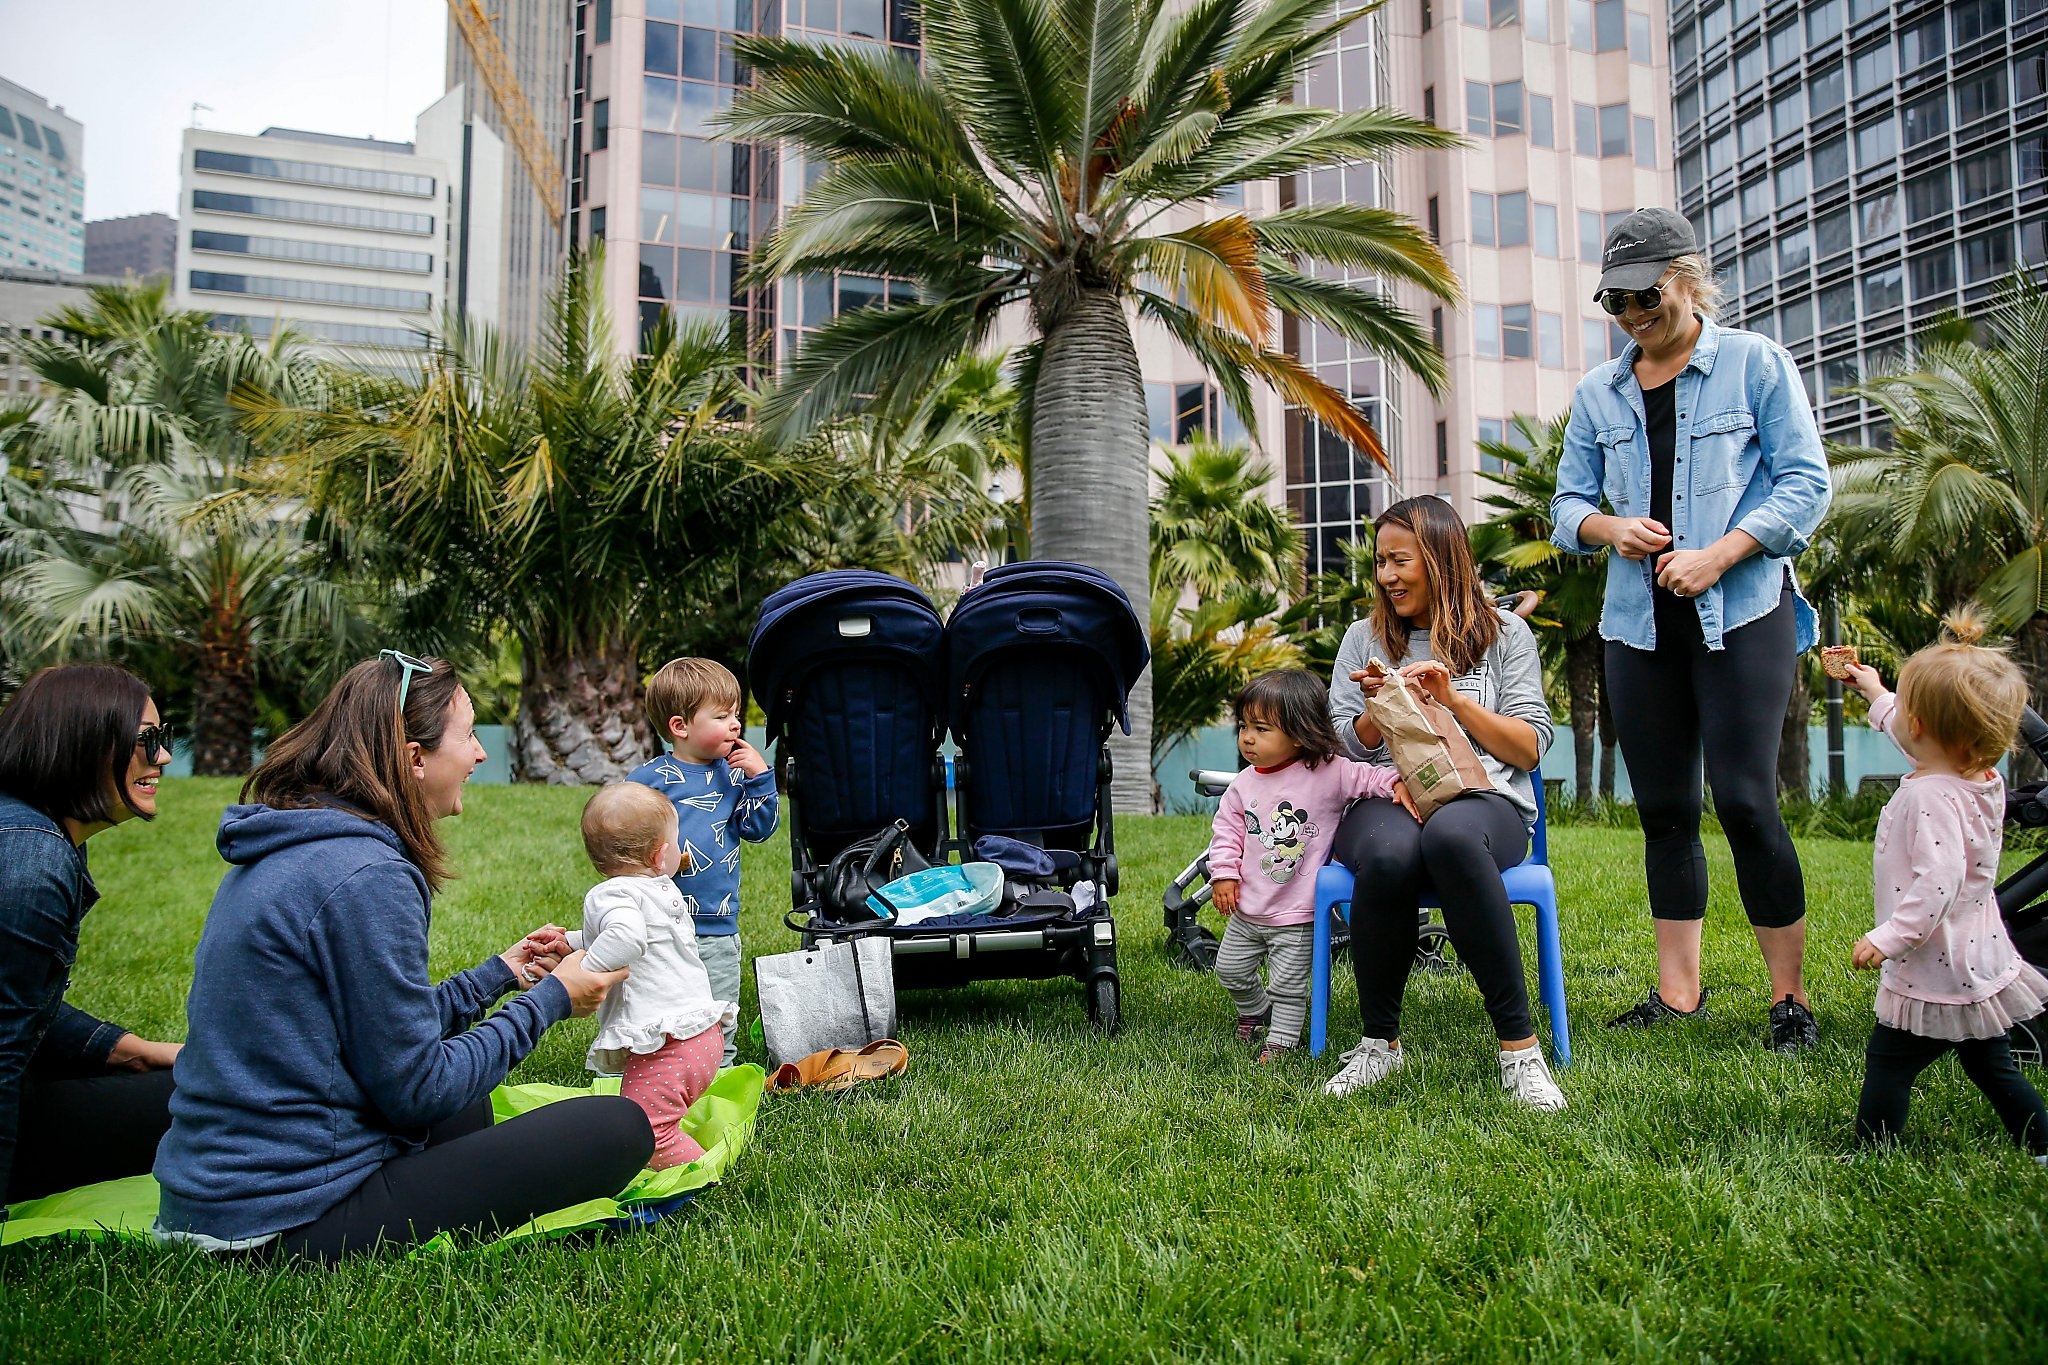 Sf S Transbay Transit Center Rooftop Park Reopens To